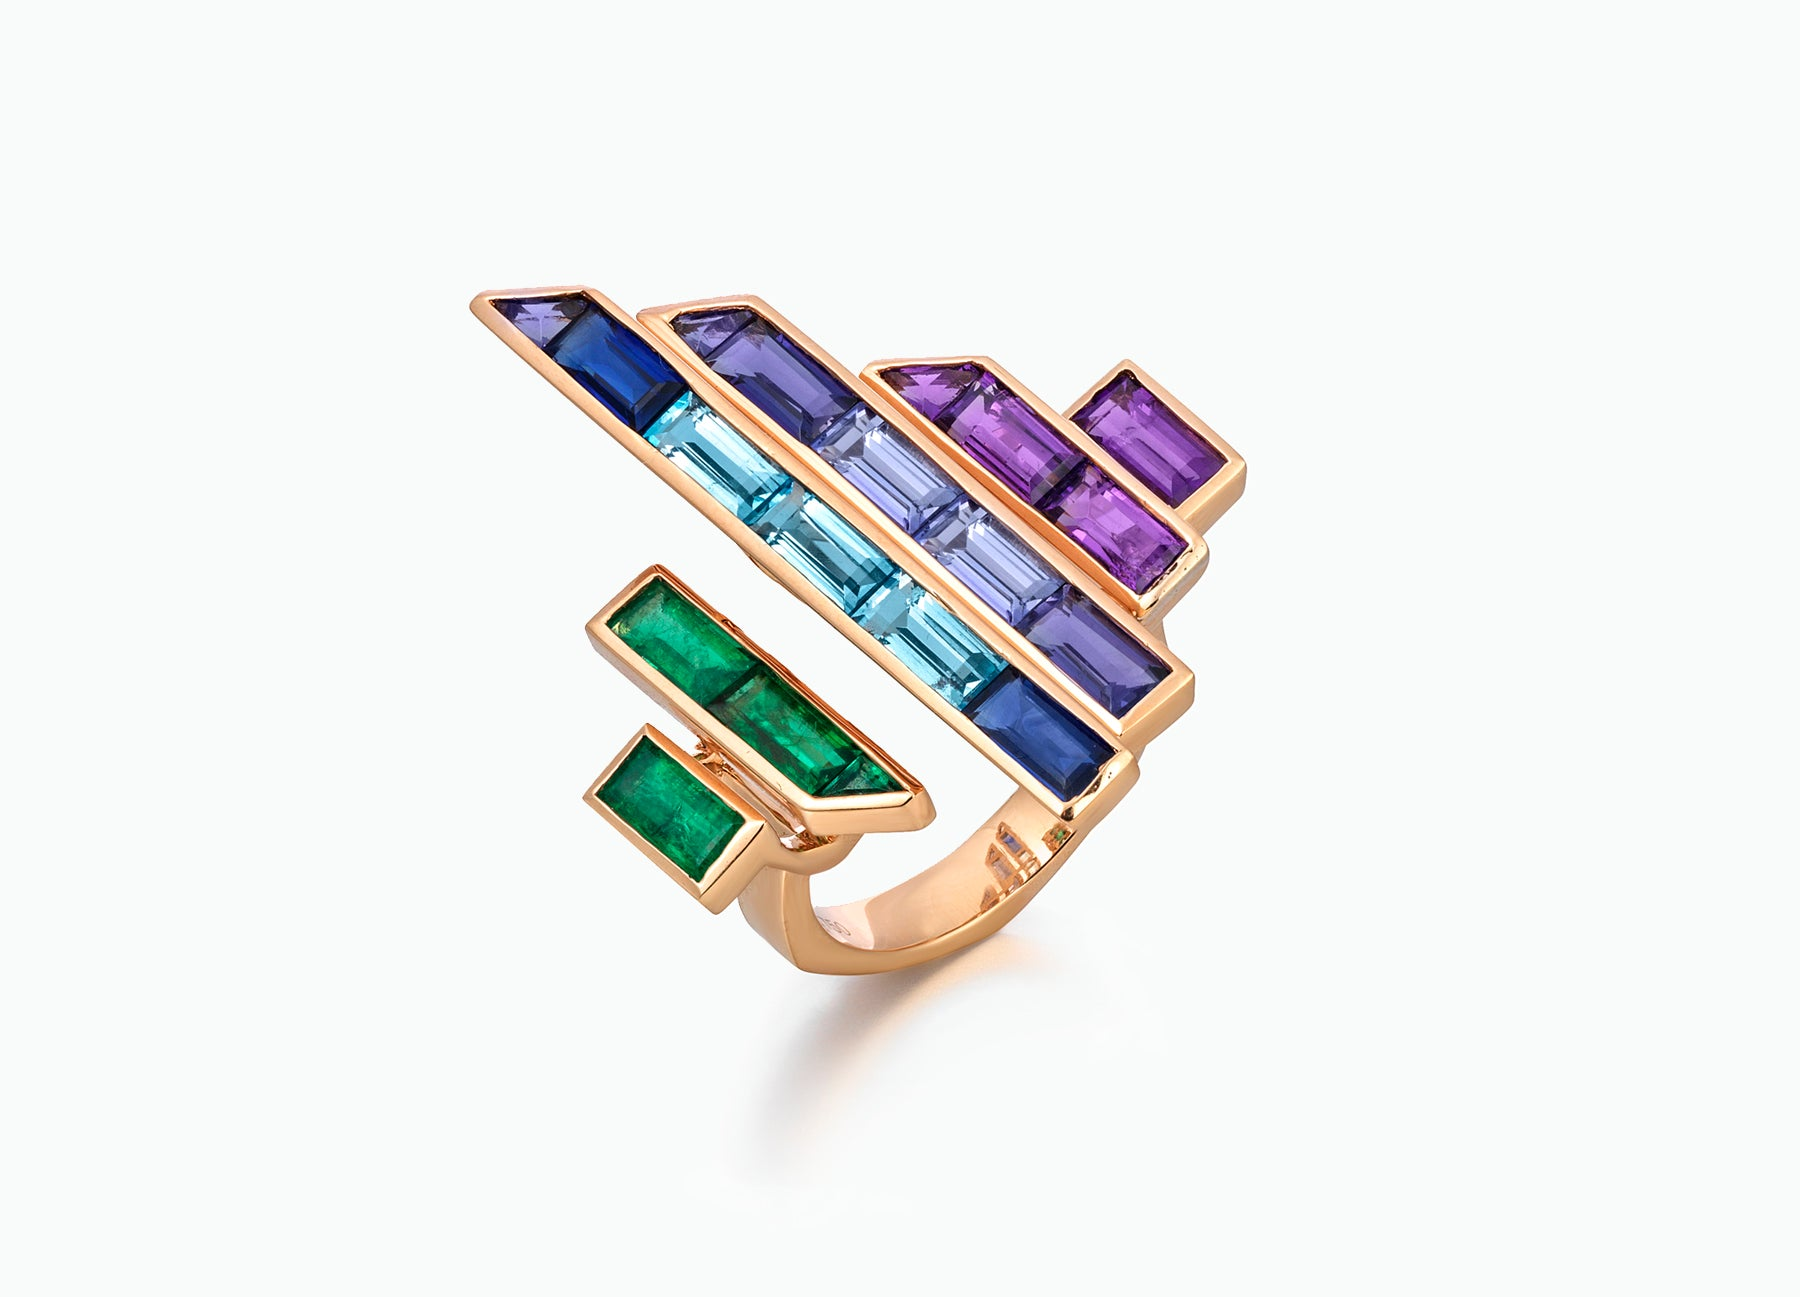 Blade runner rainbow ring in 18K rose gold by Tomasz Donocik side view